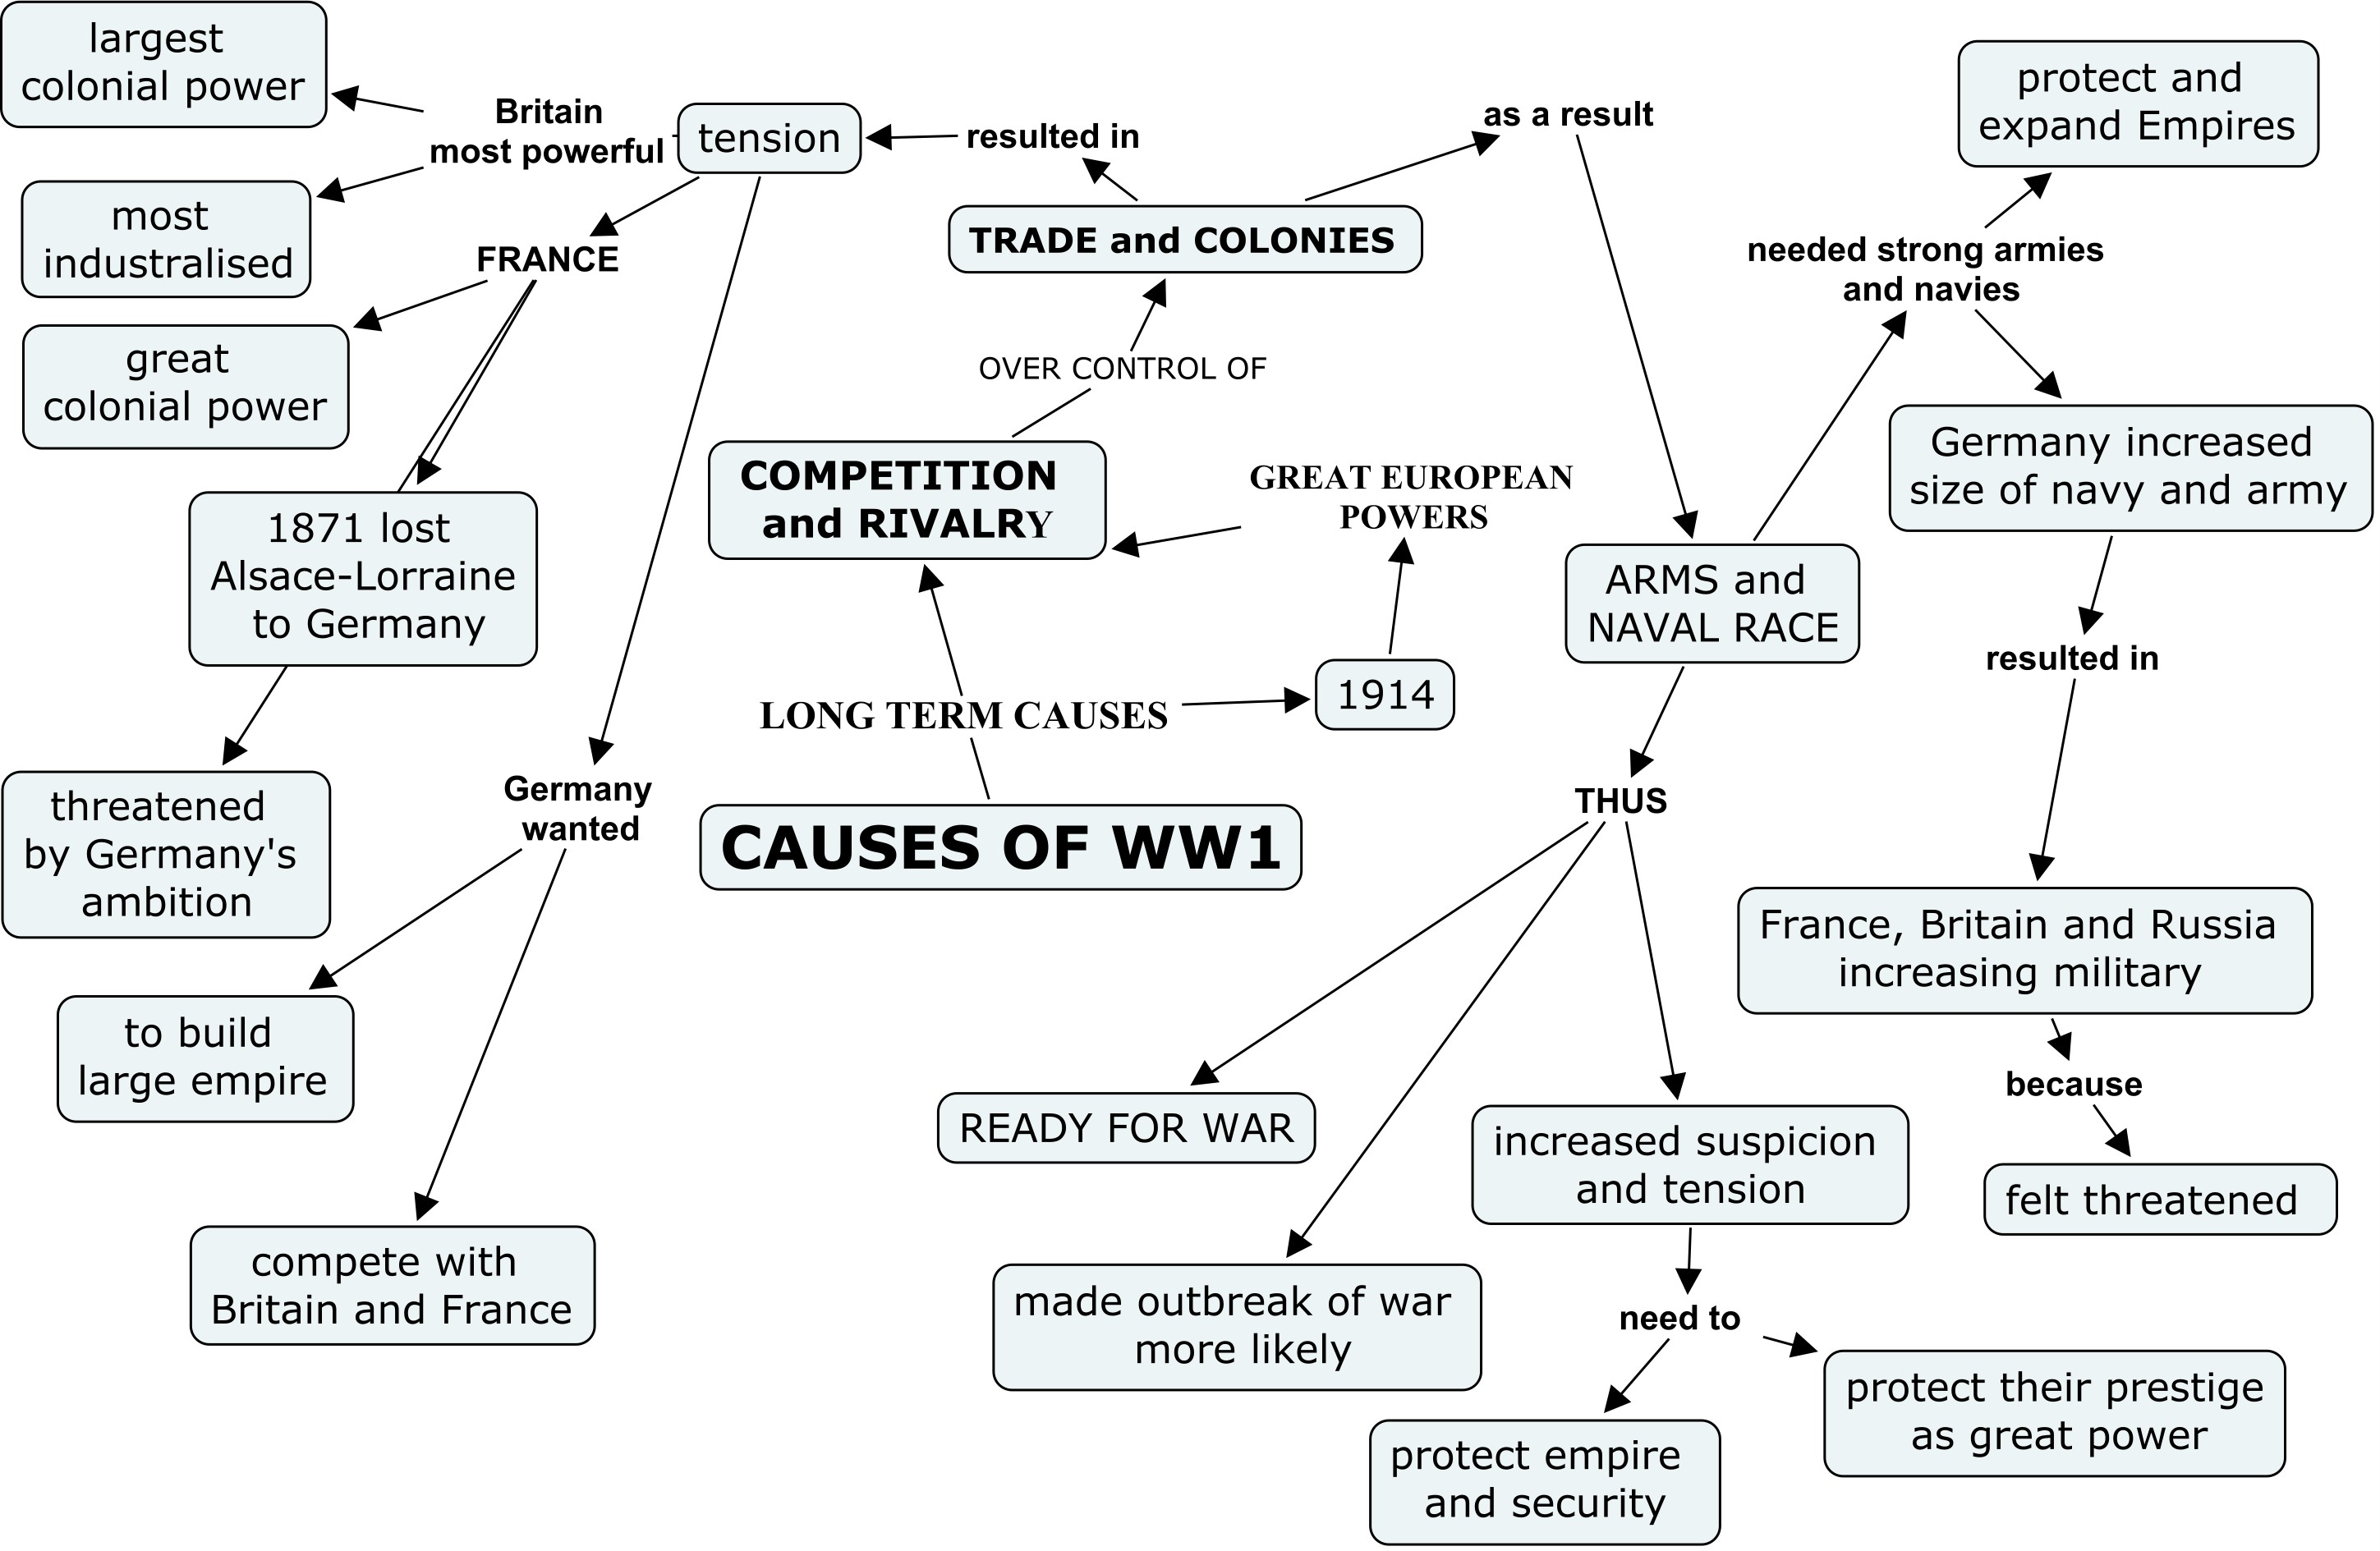 What are some short-term and long-term impacts of World War I?